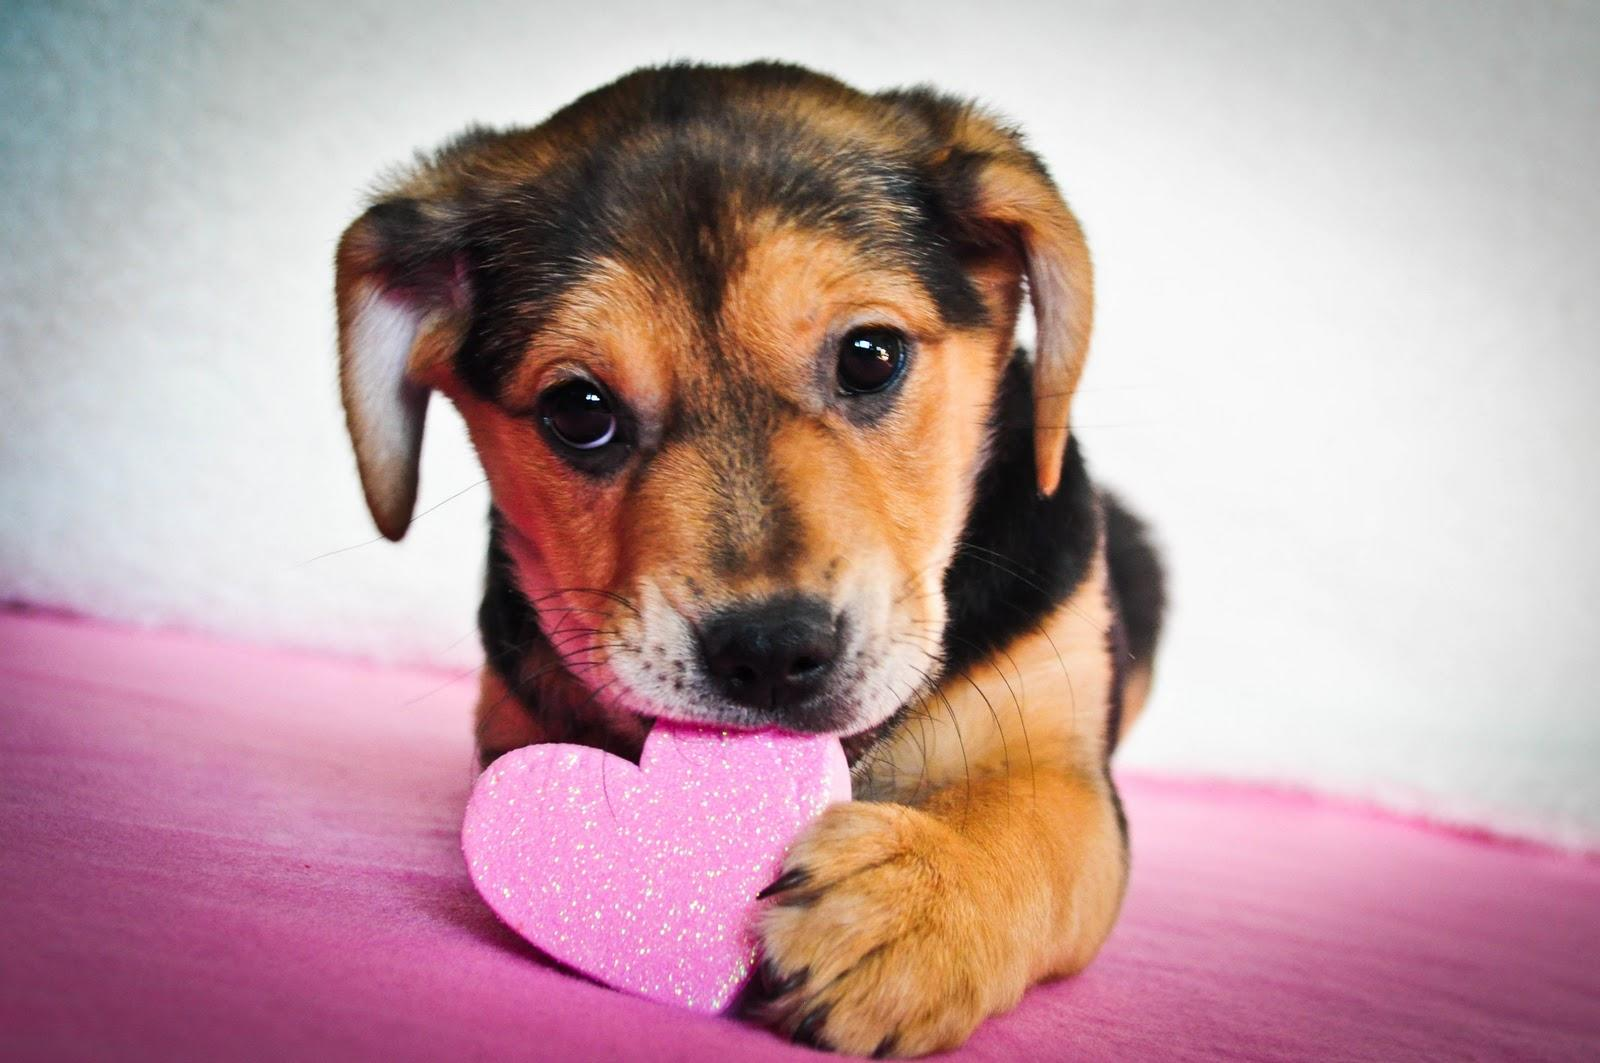 If you are single on Valentine's Day, all you need is a puppy!